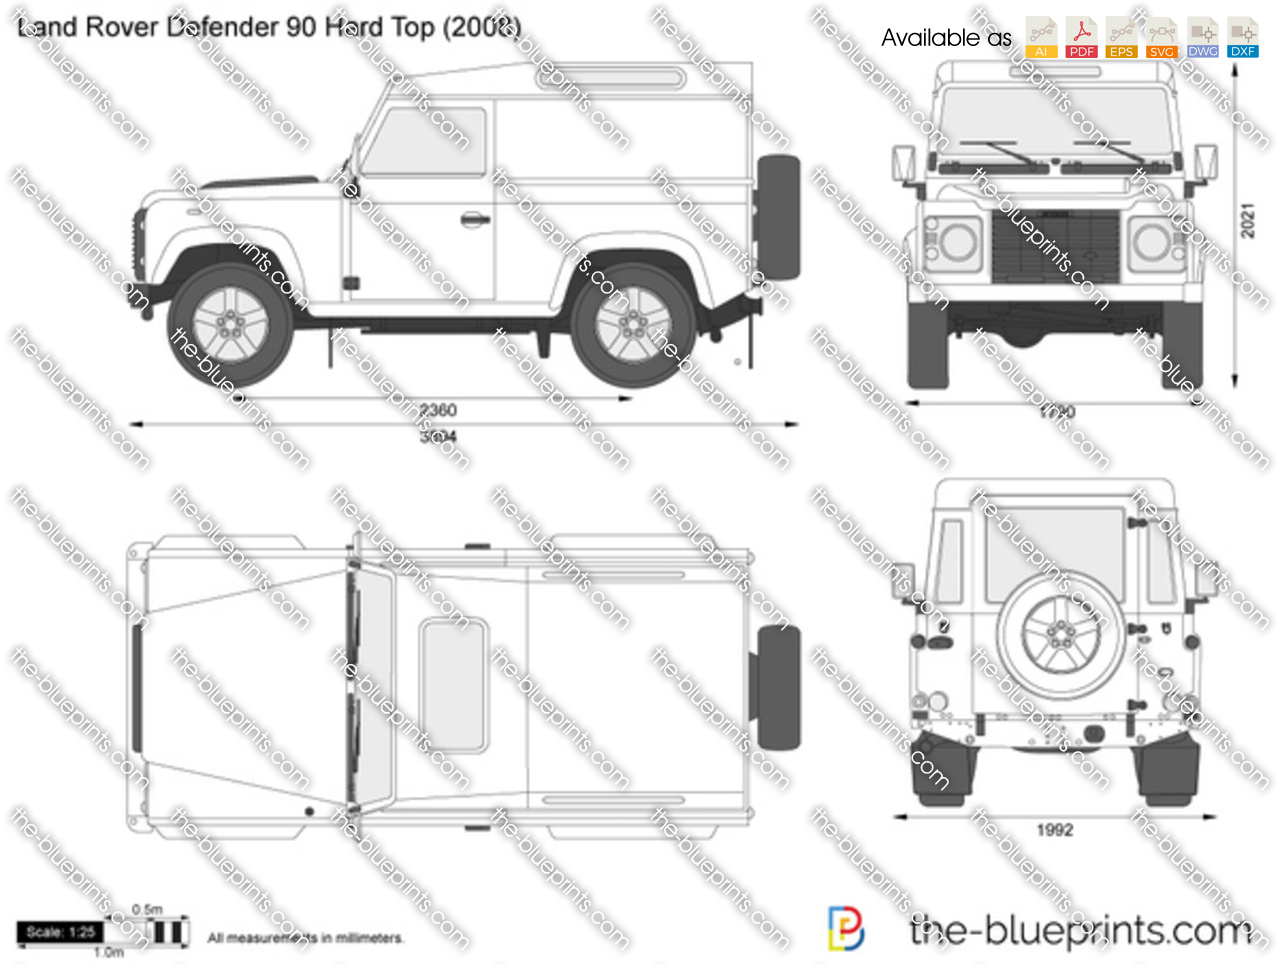 Land Rover Defender 90 Hard Top 2002